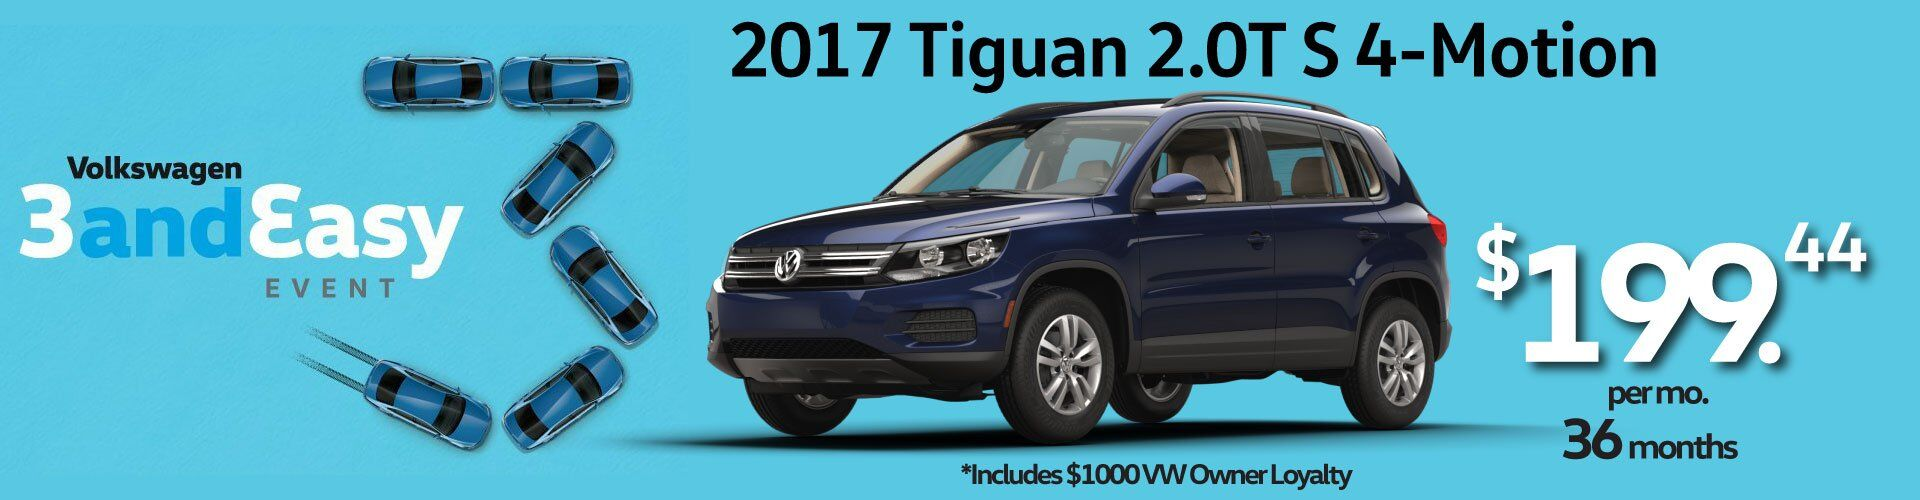 3 and Easy Tiguan Deal at Douglas VW!